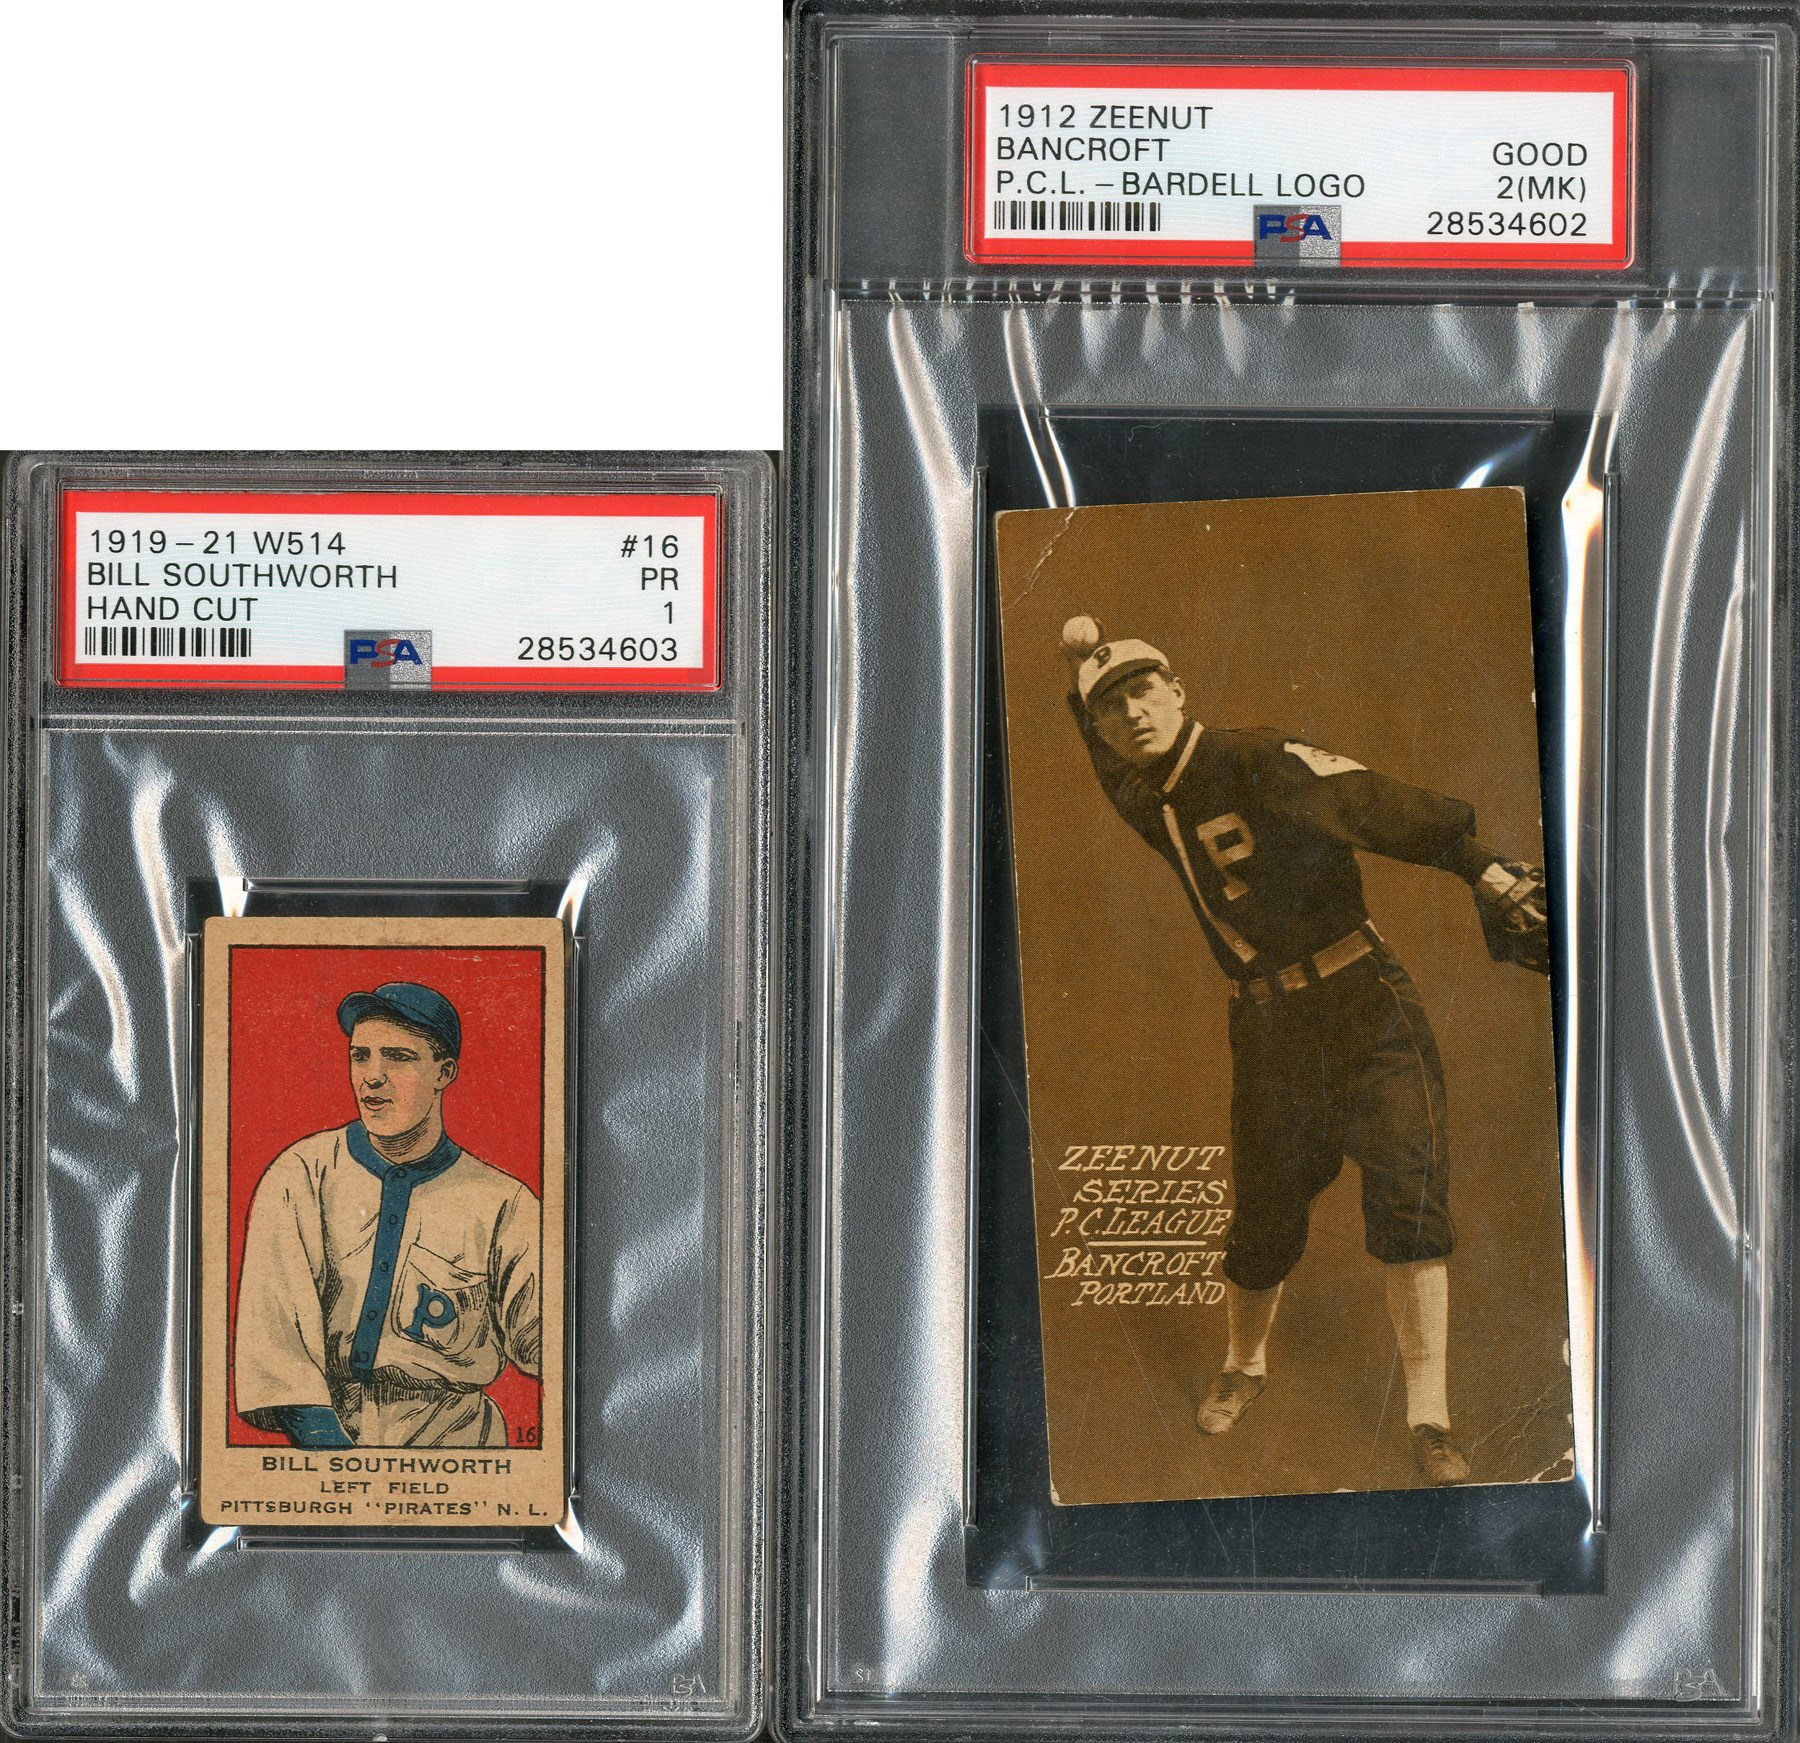 Baseball and Trading Cards - Leland's Classic